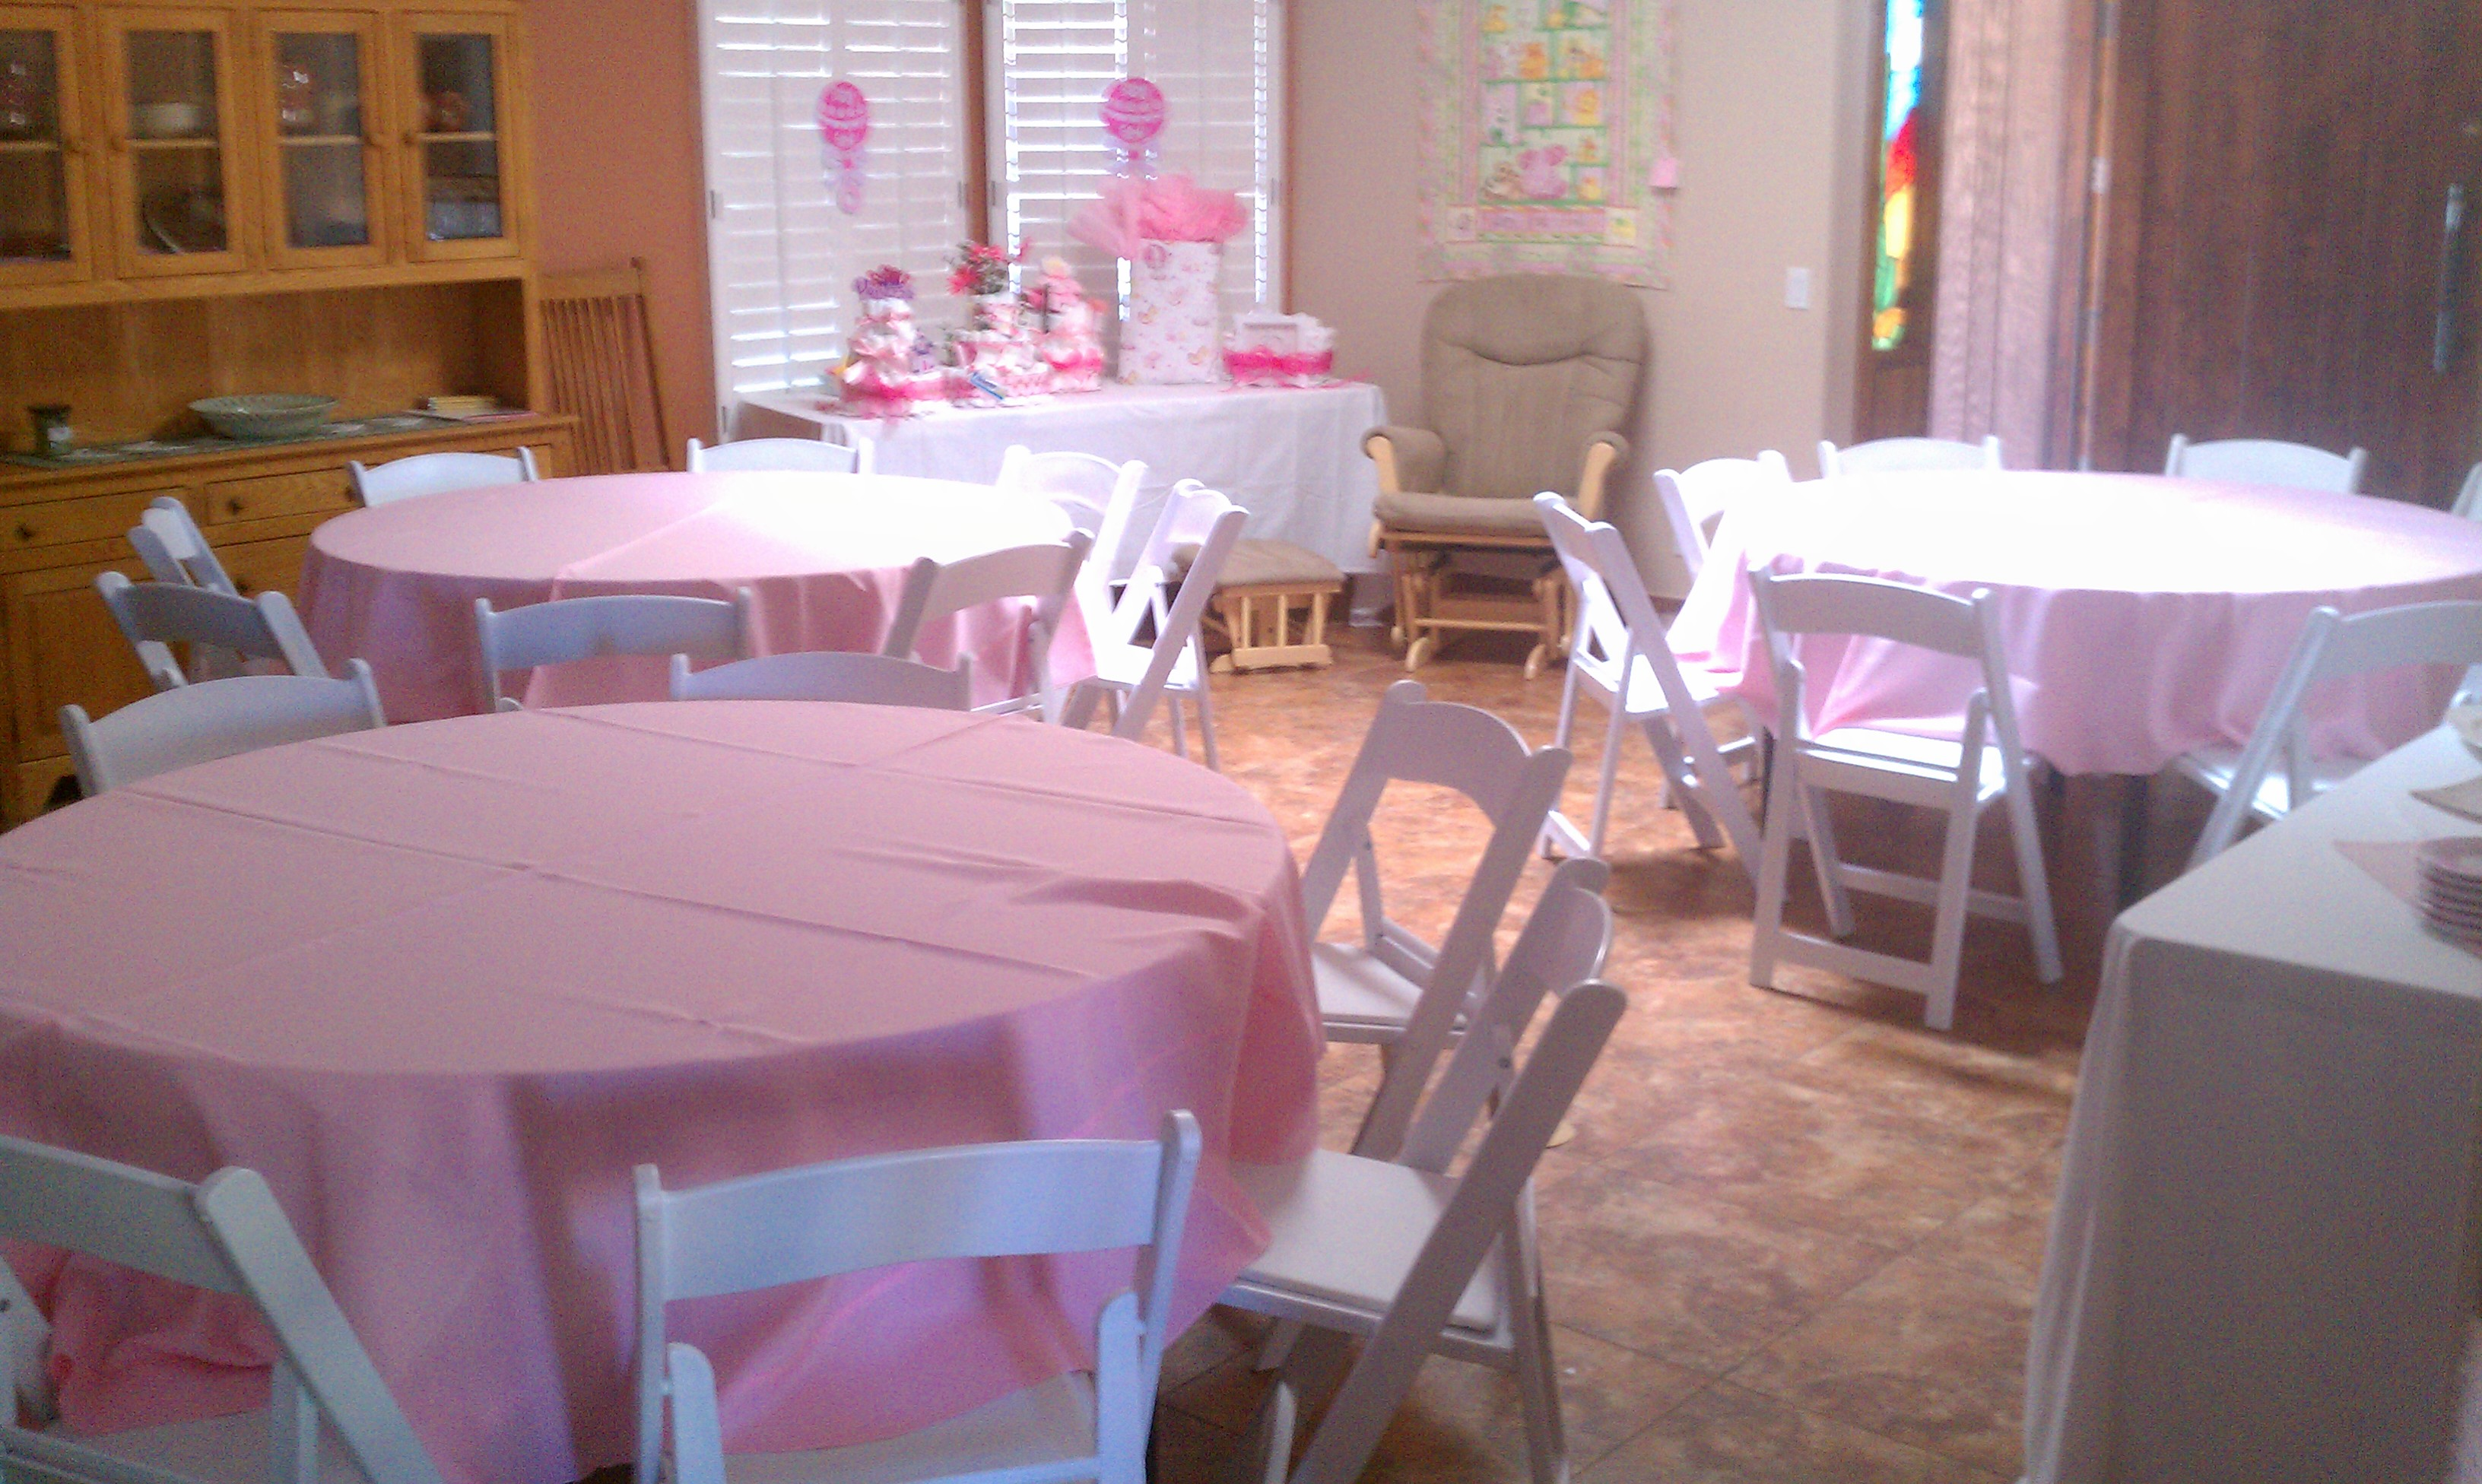 Baby Shower Table Decoration Ideas 3264 x 1952